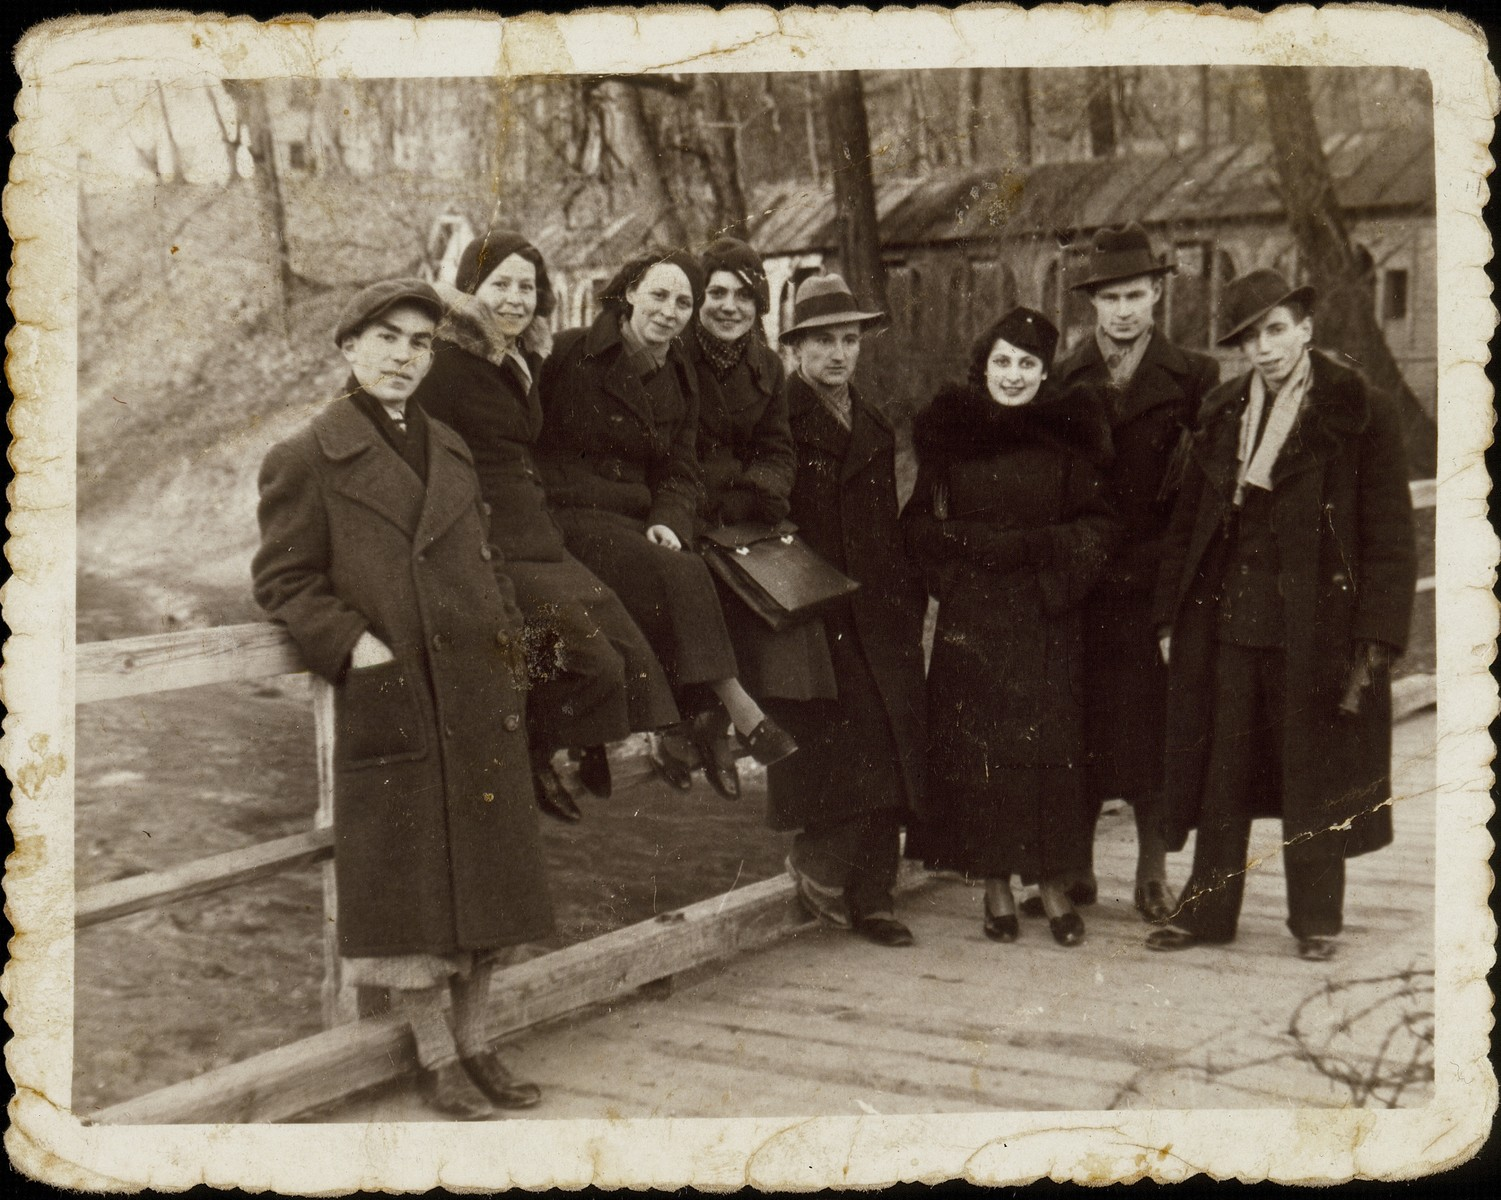 Chaim Paikowski (far left)  stands on a wooden bridge with a group of friends.